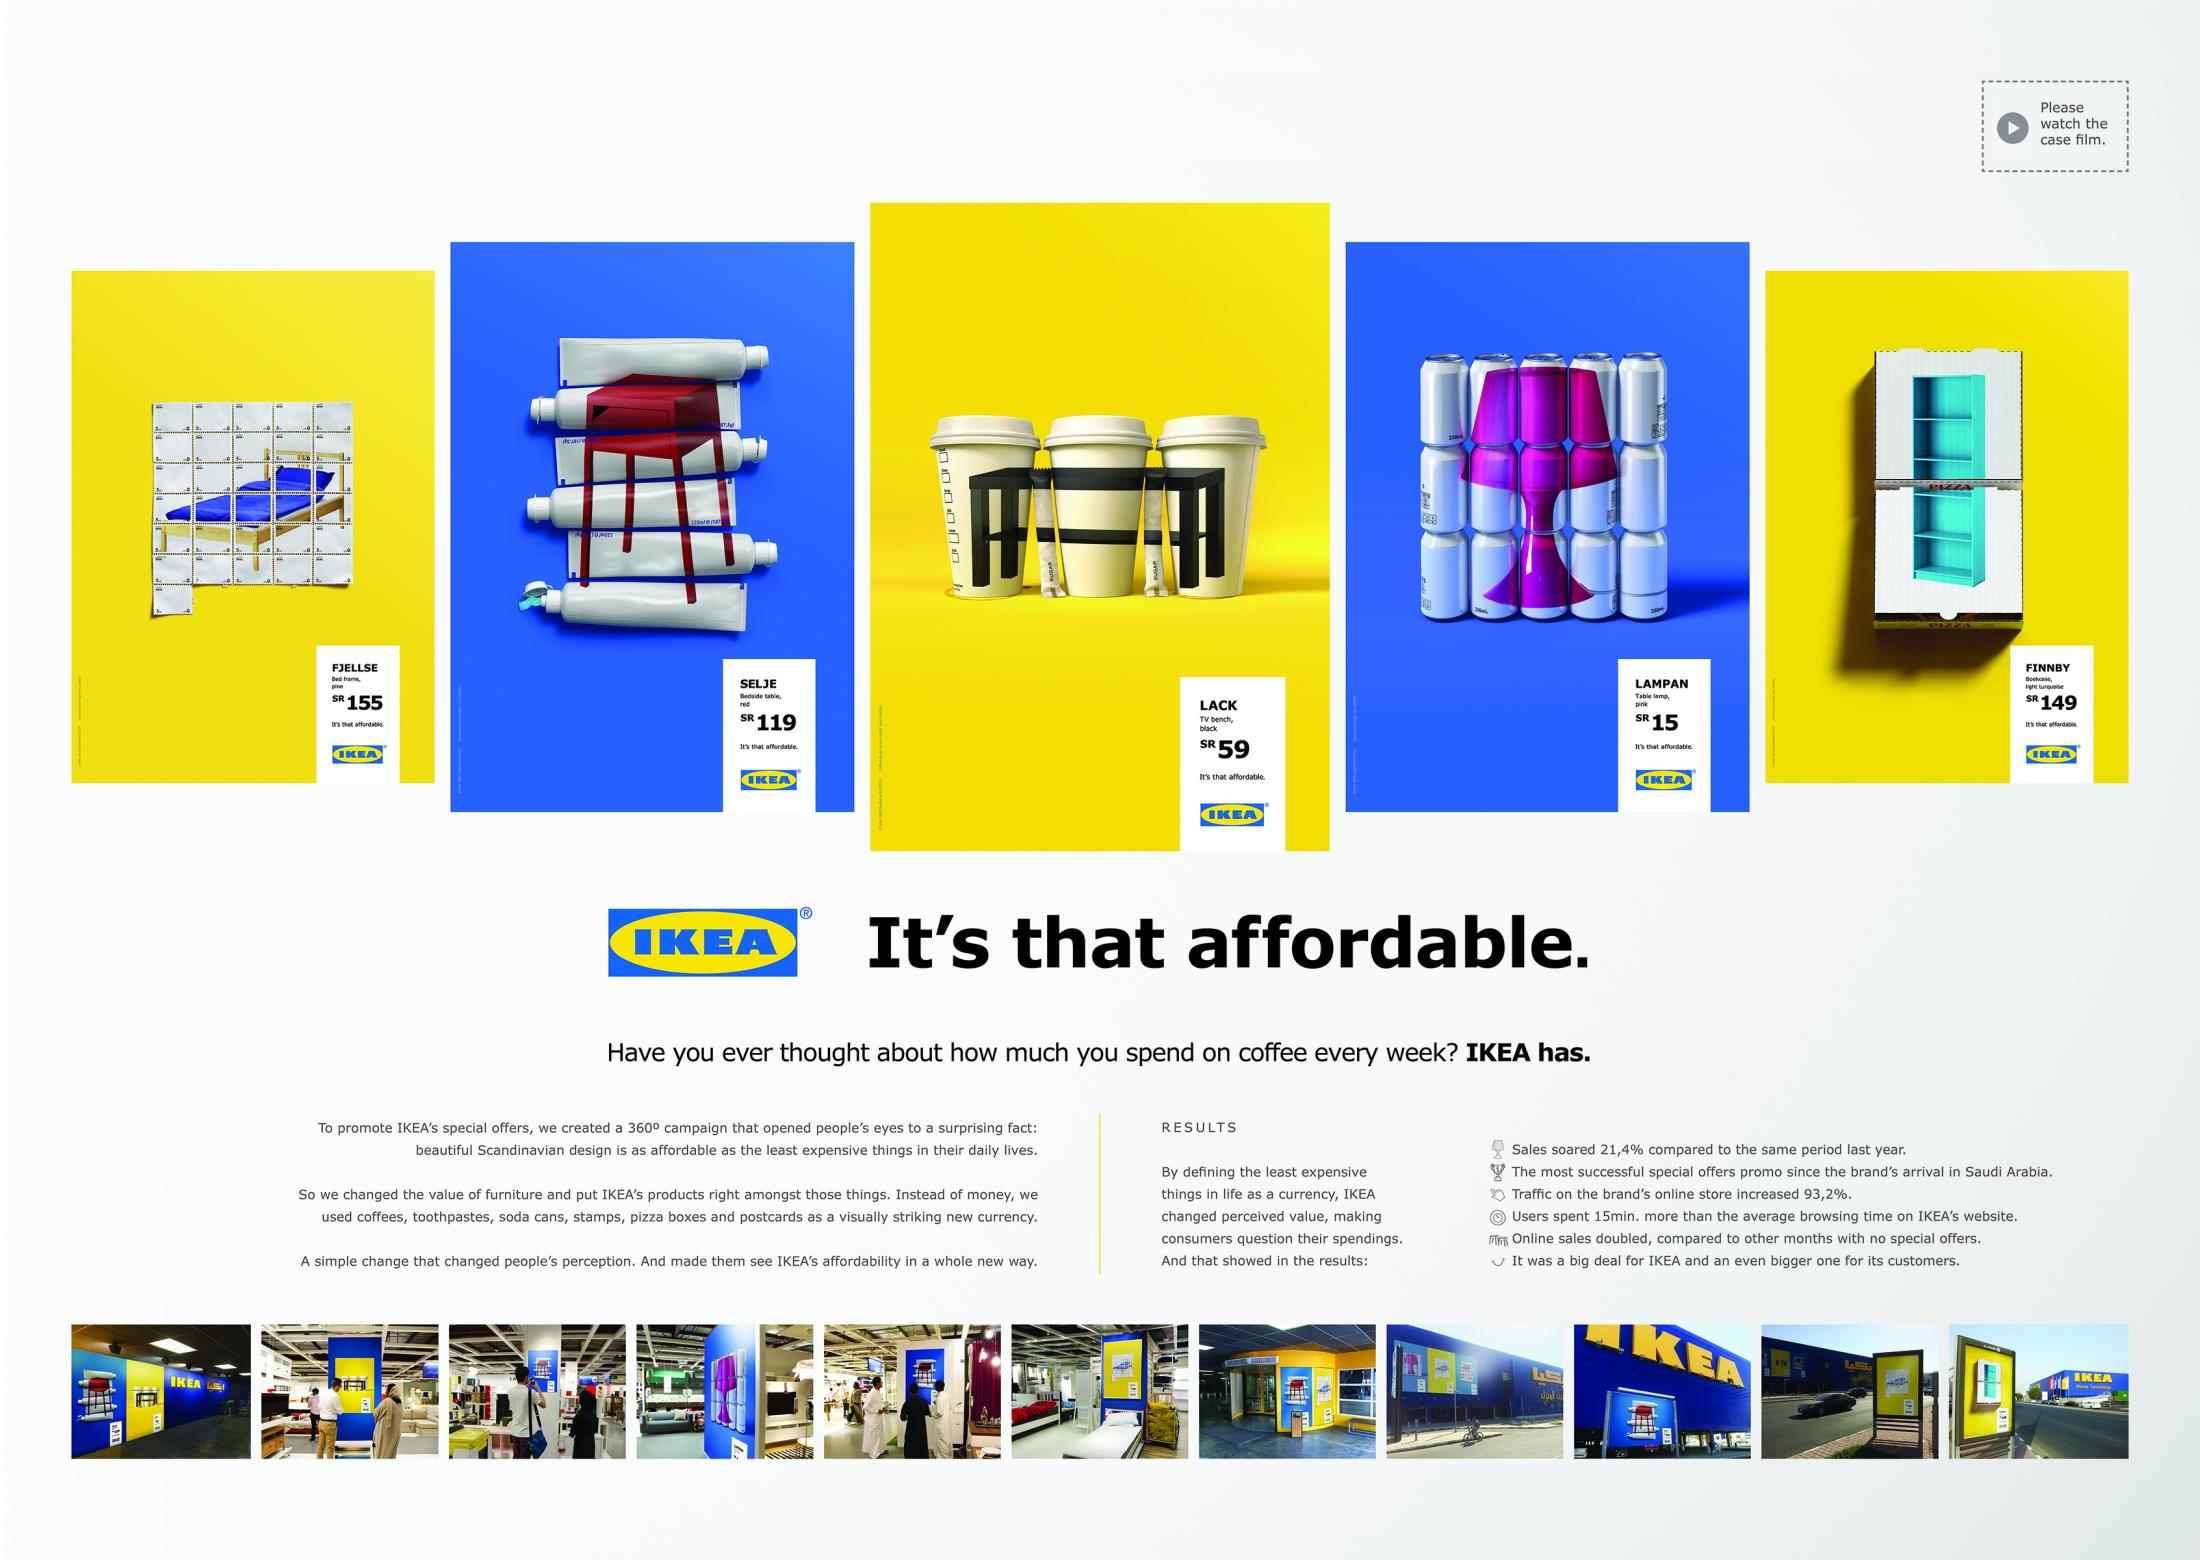 Thumbnail for IKEA. It's that affordable.